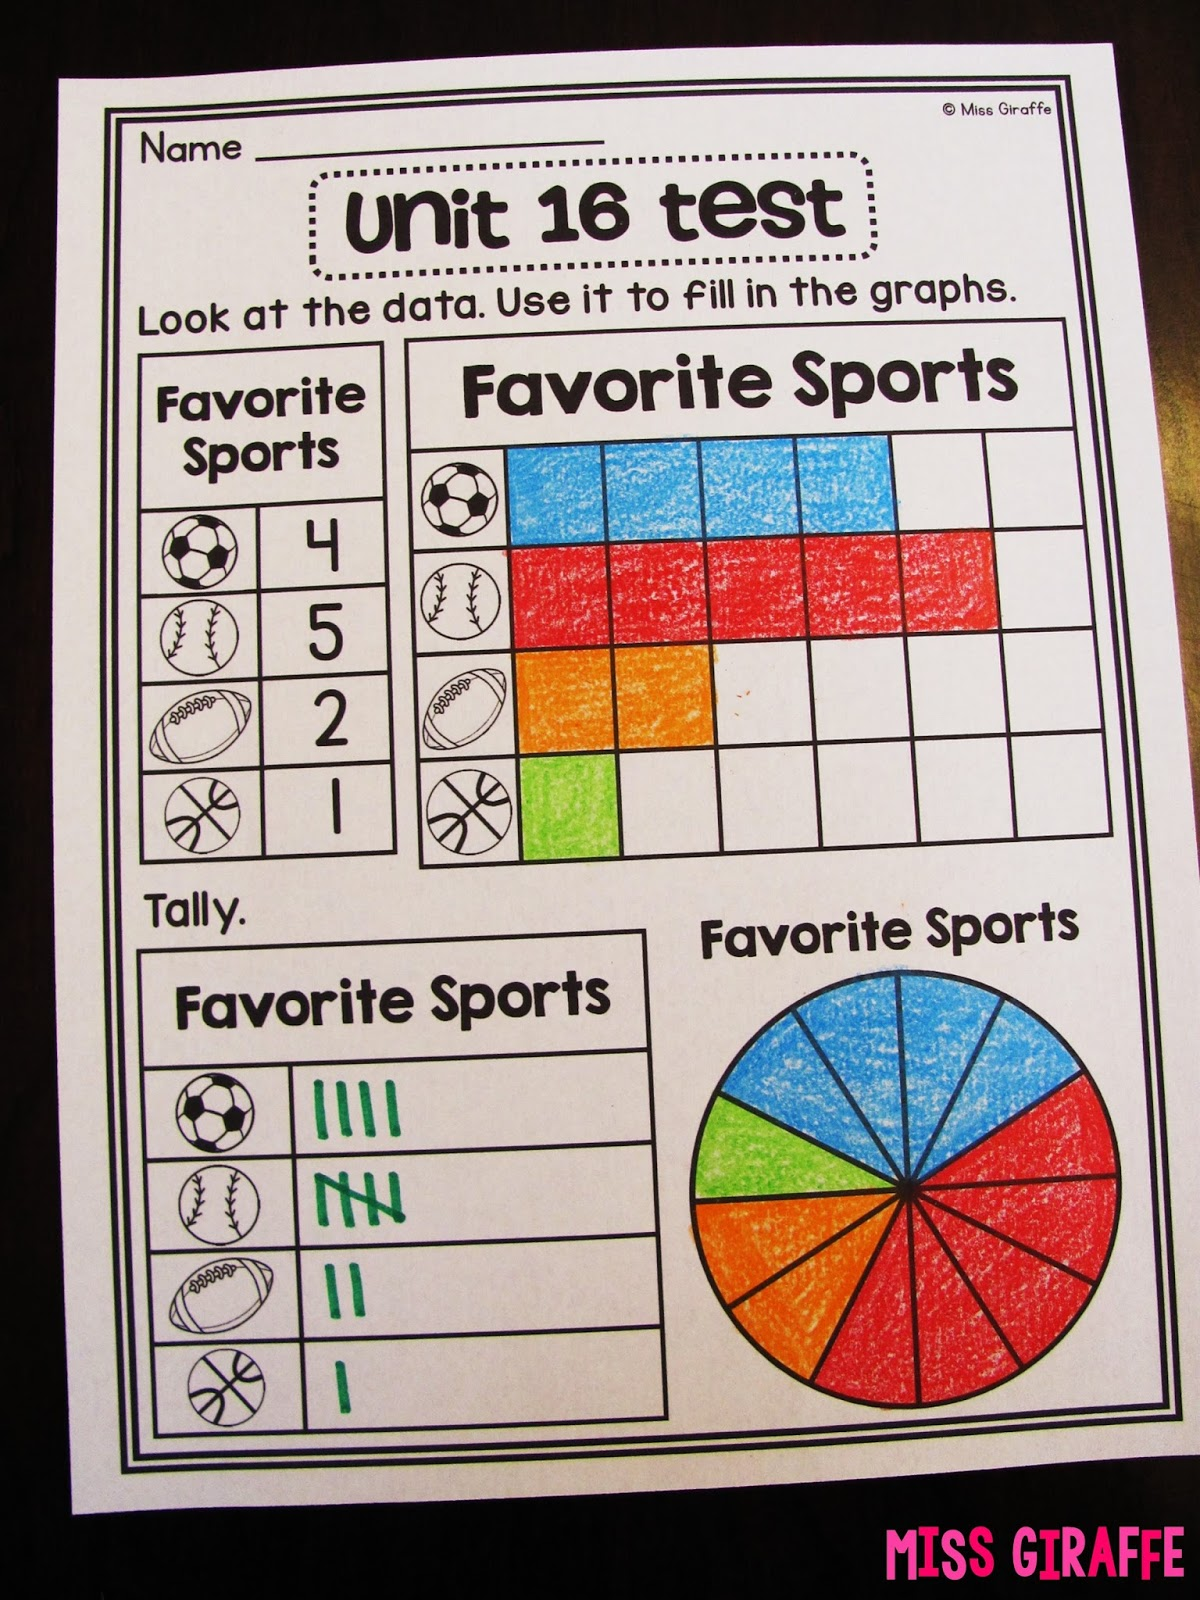 Miss Giraffe 39 S Class Graphing And Data Analysis In First